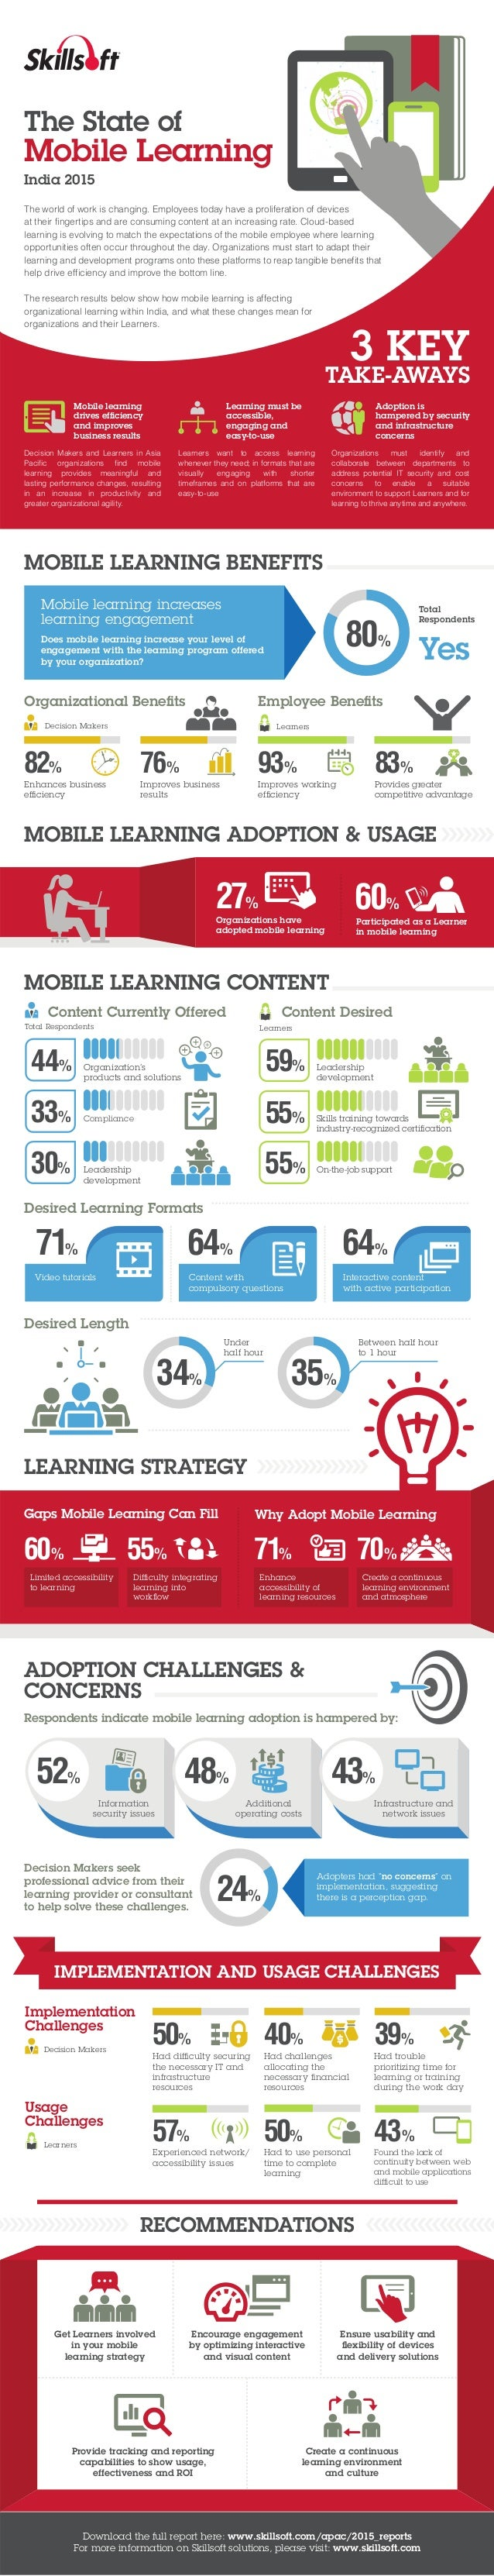 LEARNING STRATEGY Why Adopt Mobile Learning 71% Enhance accessibility of learning resources 70% Create a continuous learni...